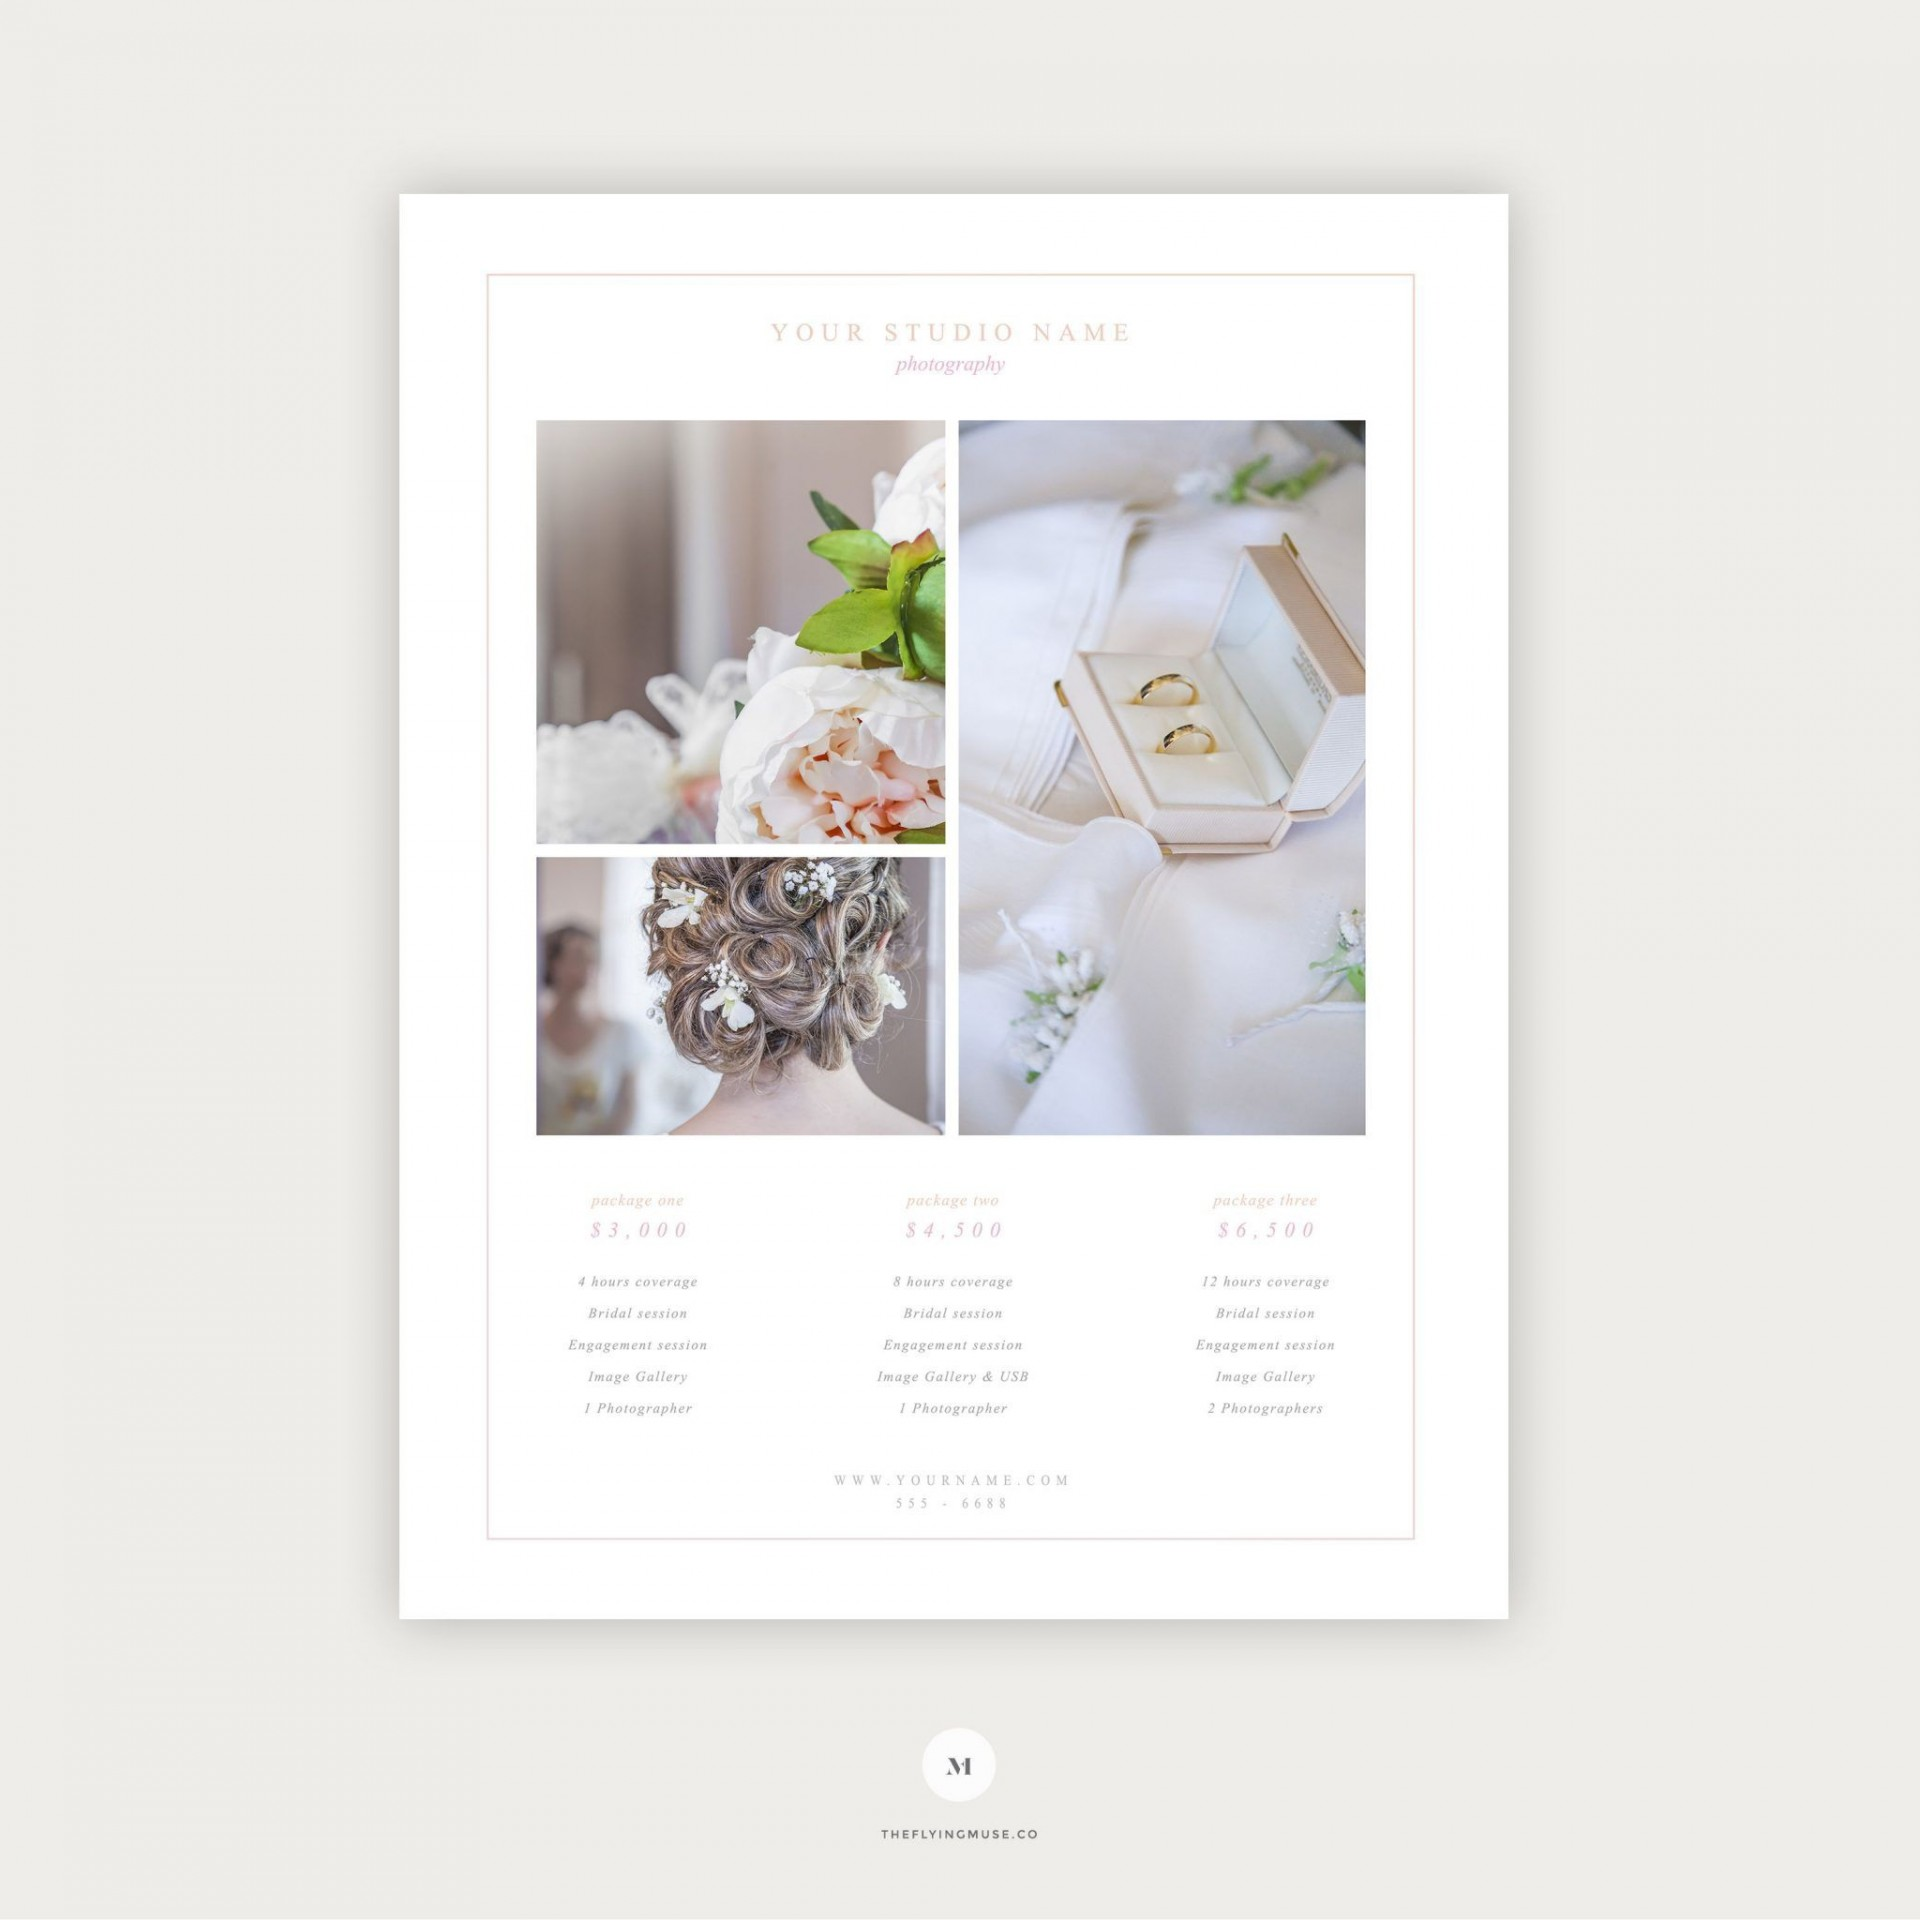 005 Breathtaking Free Photography Package Template Idea  Pricing1920